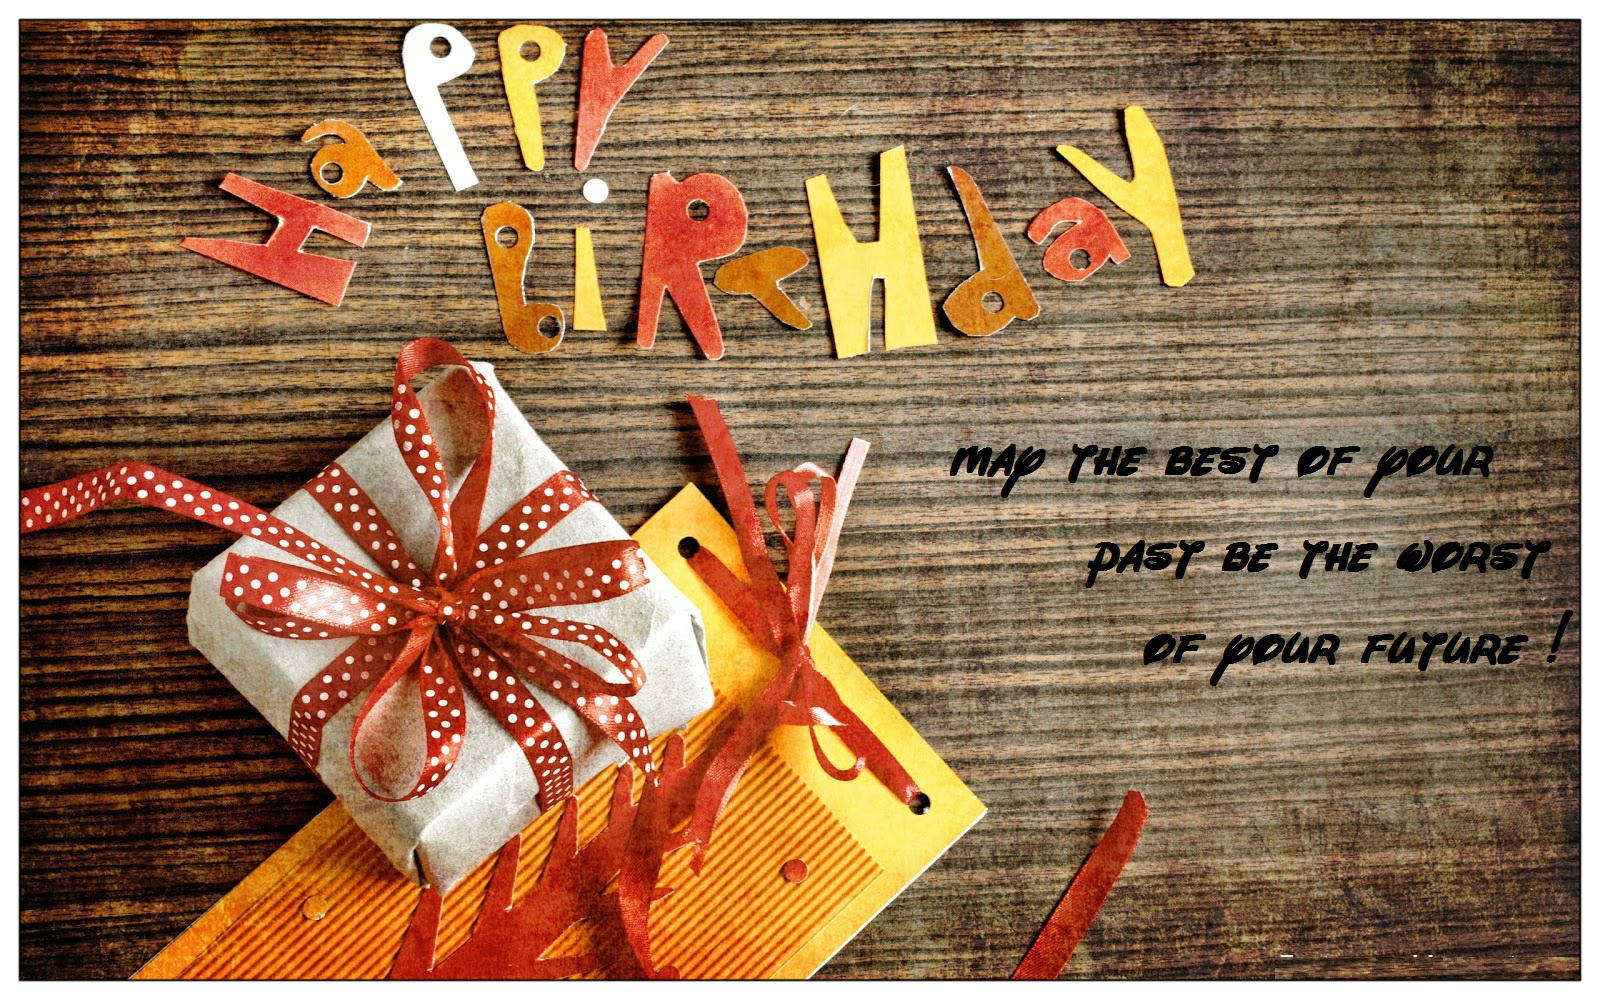 happy birthday greetings hd images ; happy-birthday-brother-in-law-greeting-hd-wallpapers